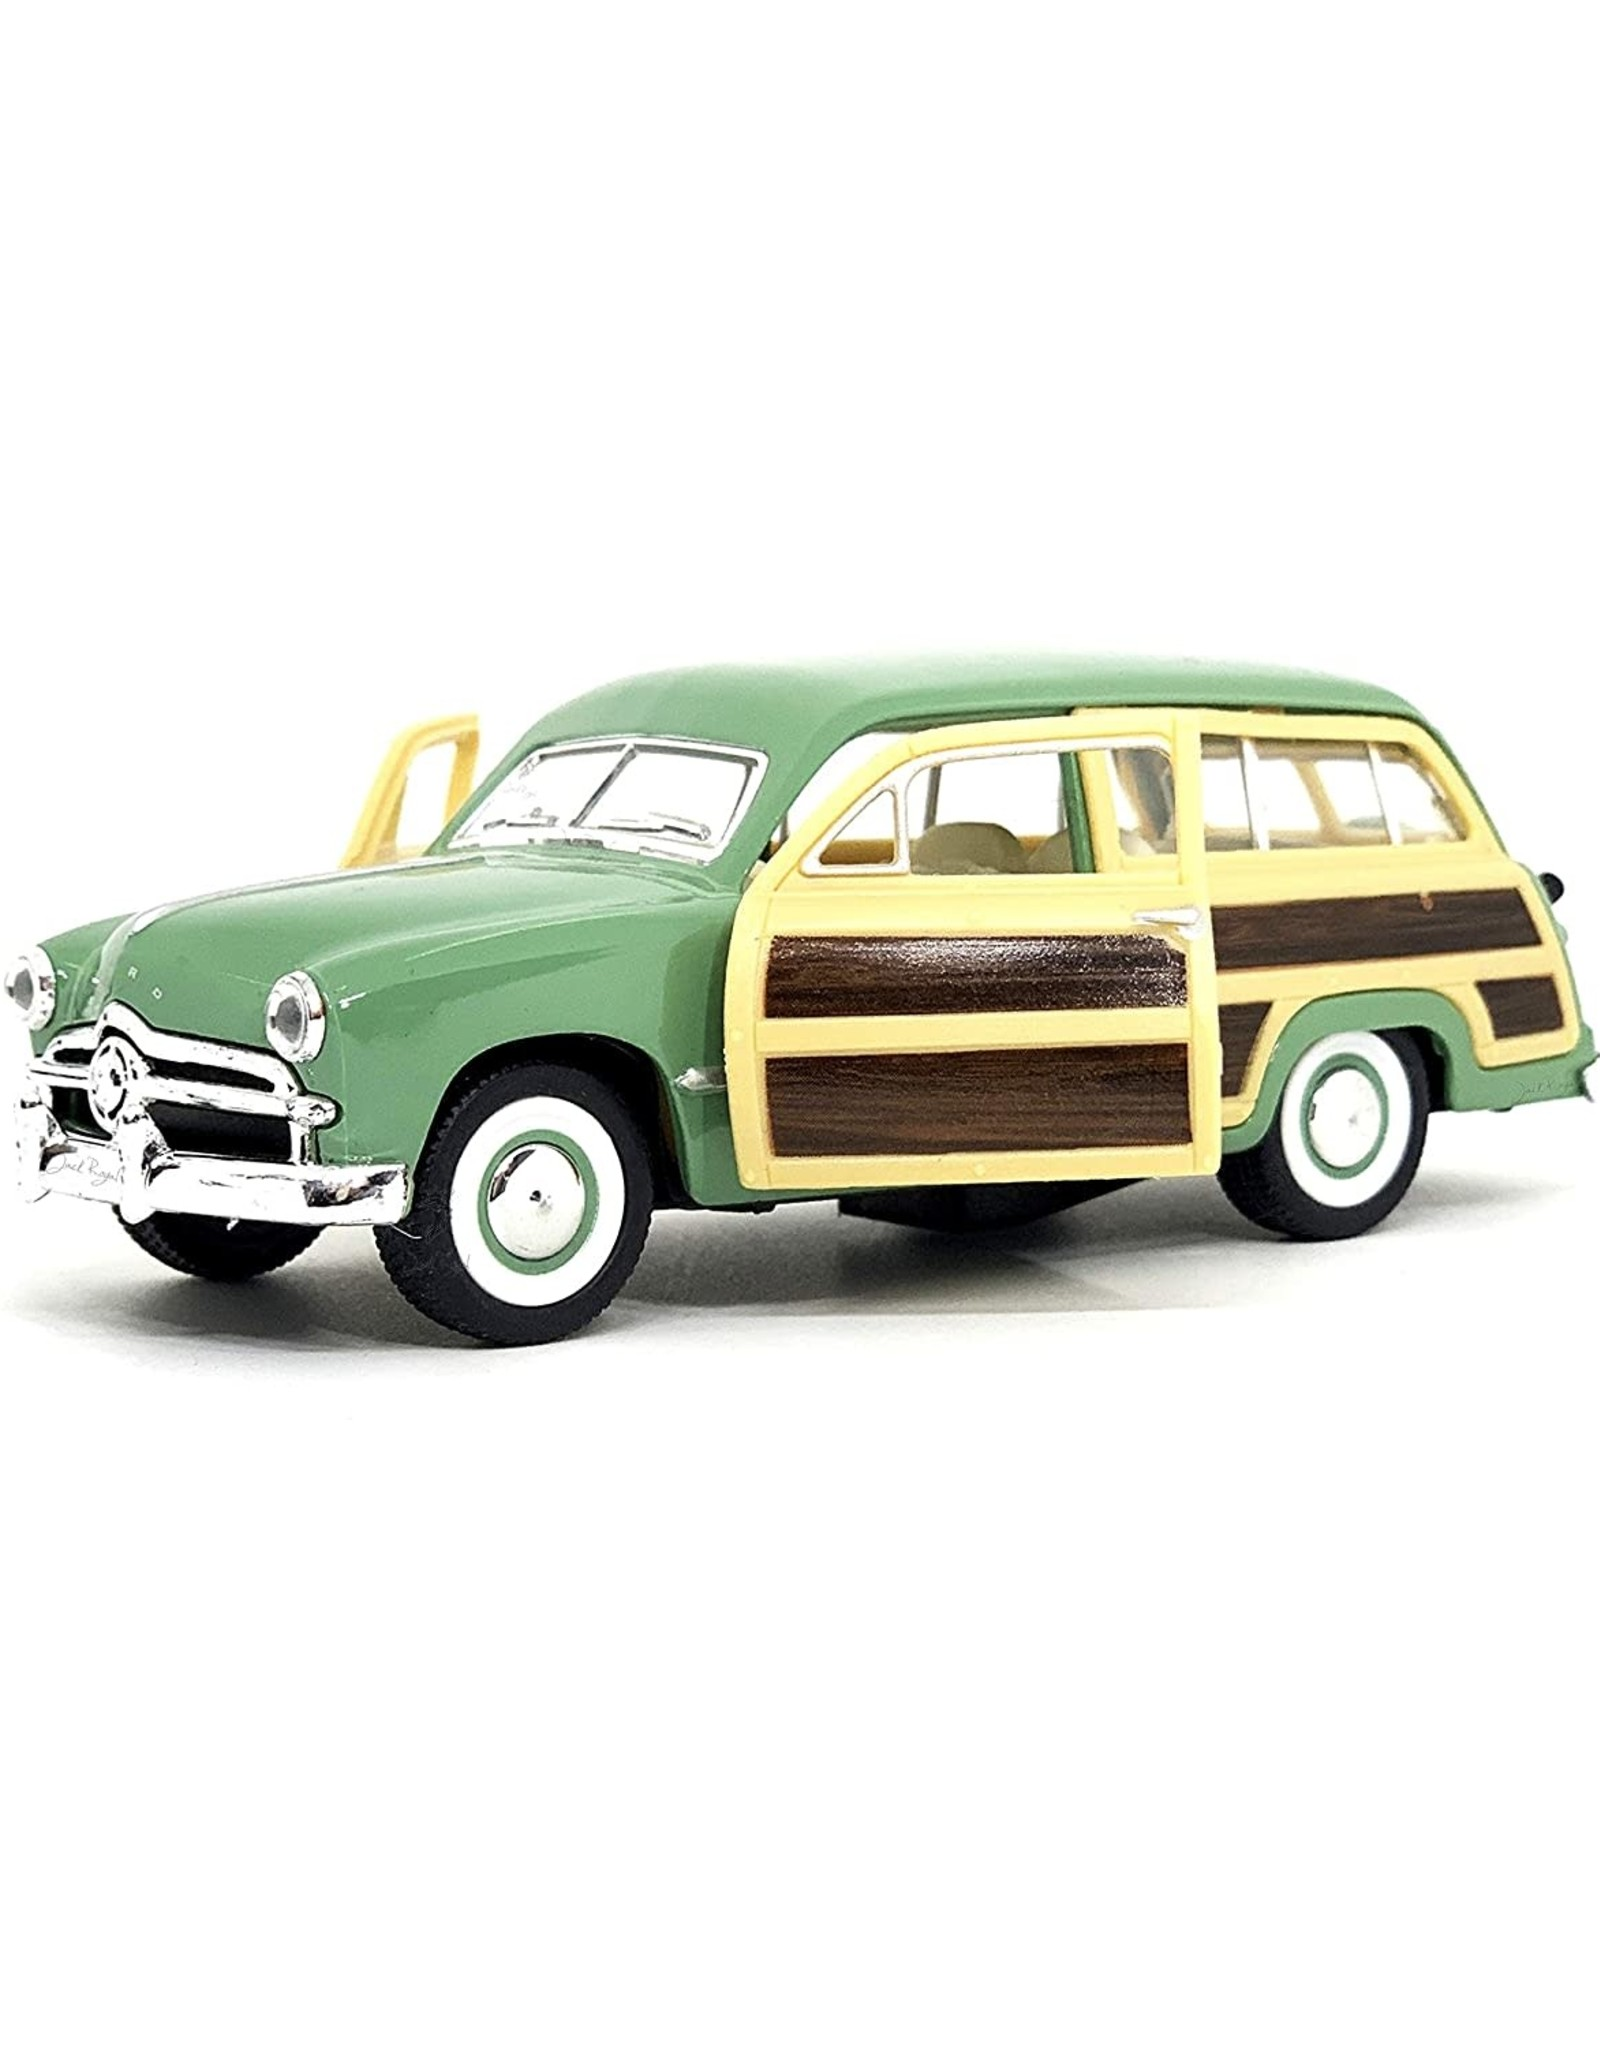 Castle Toys Die Cast 1949 Ford Woody Wagon Kt5402d Green The Dragon S Nest Toy Store